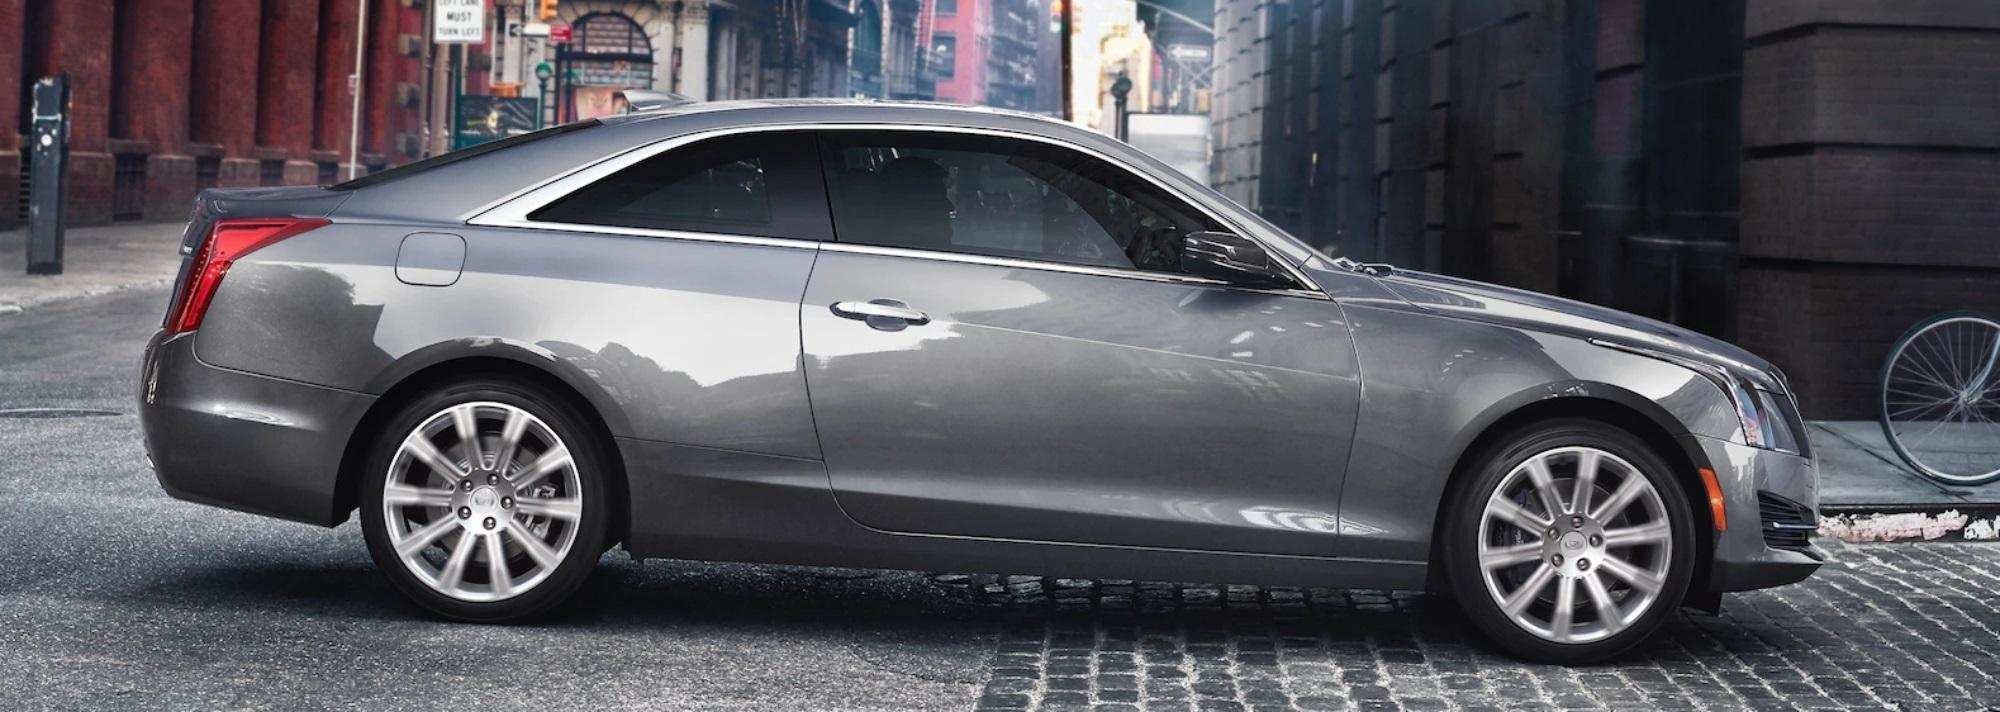 82 Concept of Cadillac Ats Coupe 2020 Picture for Cadillac Ats Coupe 2020